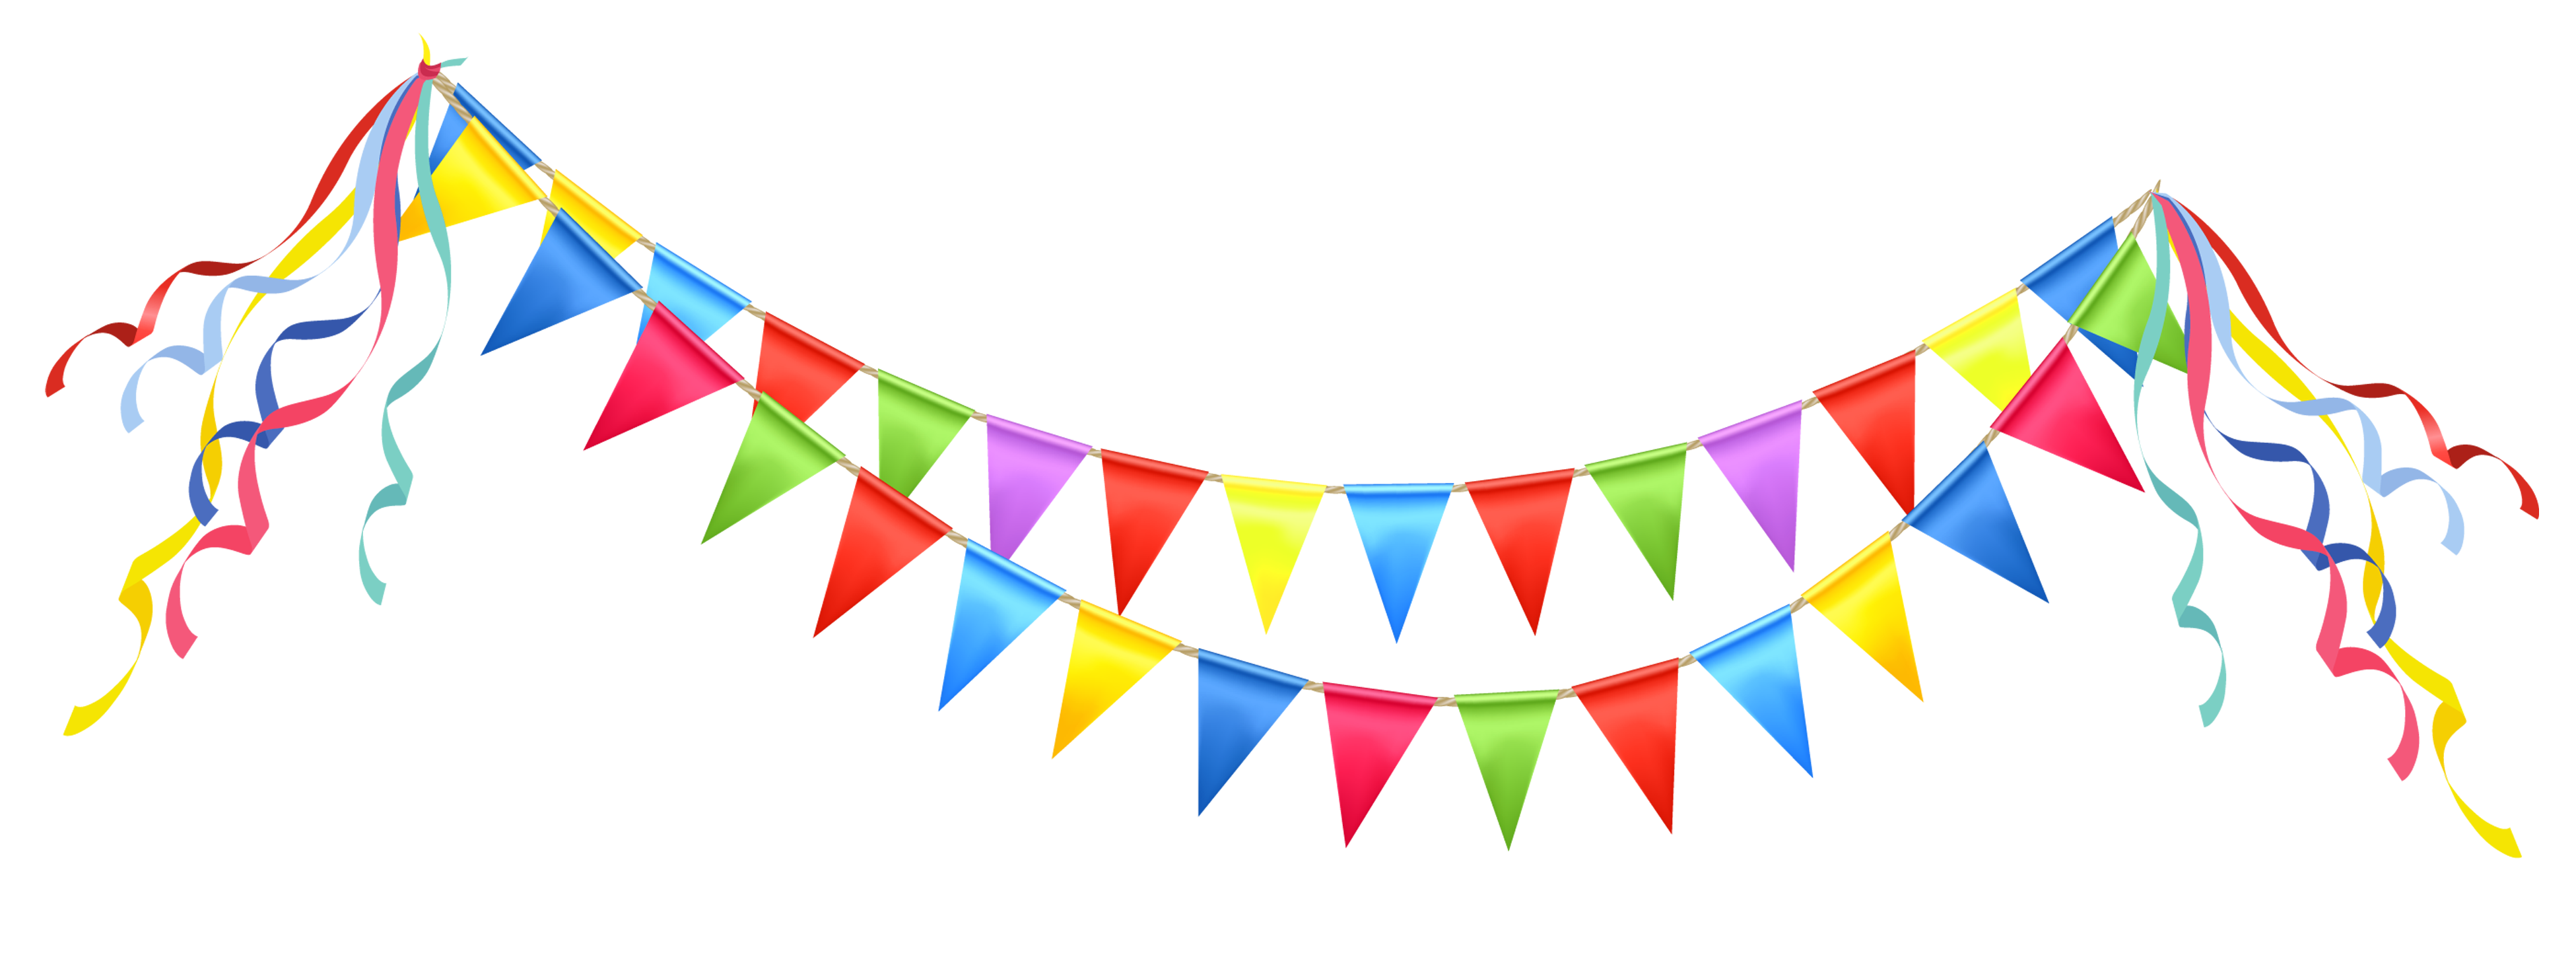 Birthday celebration clip art free.